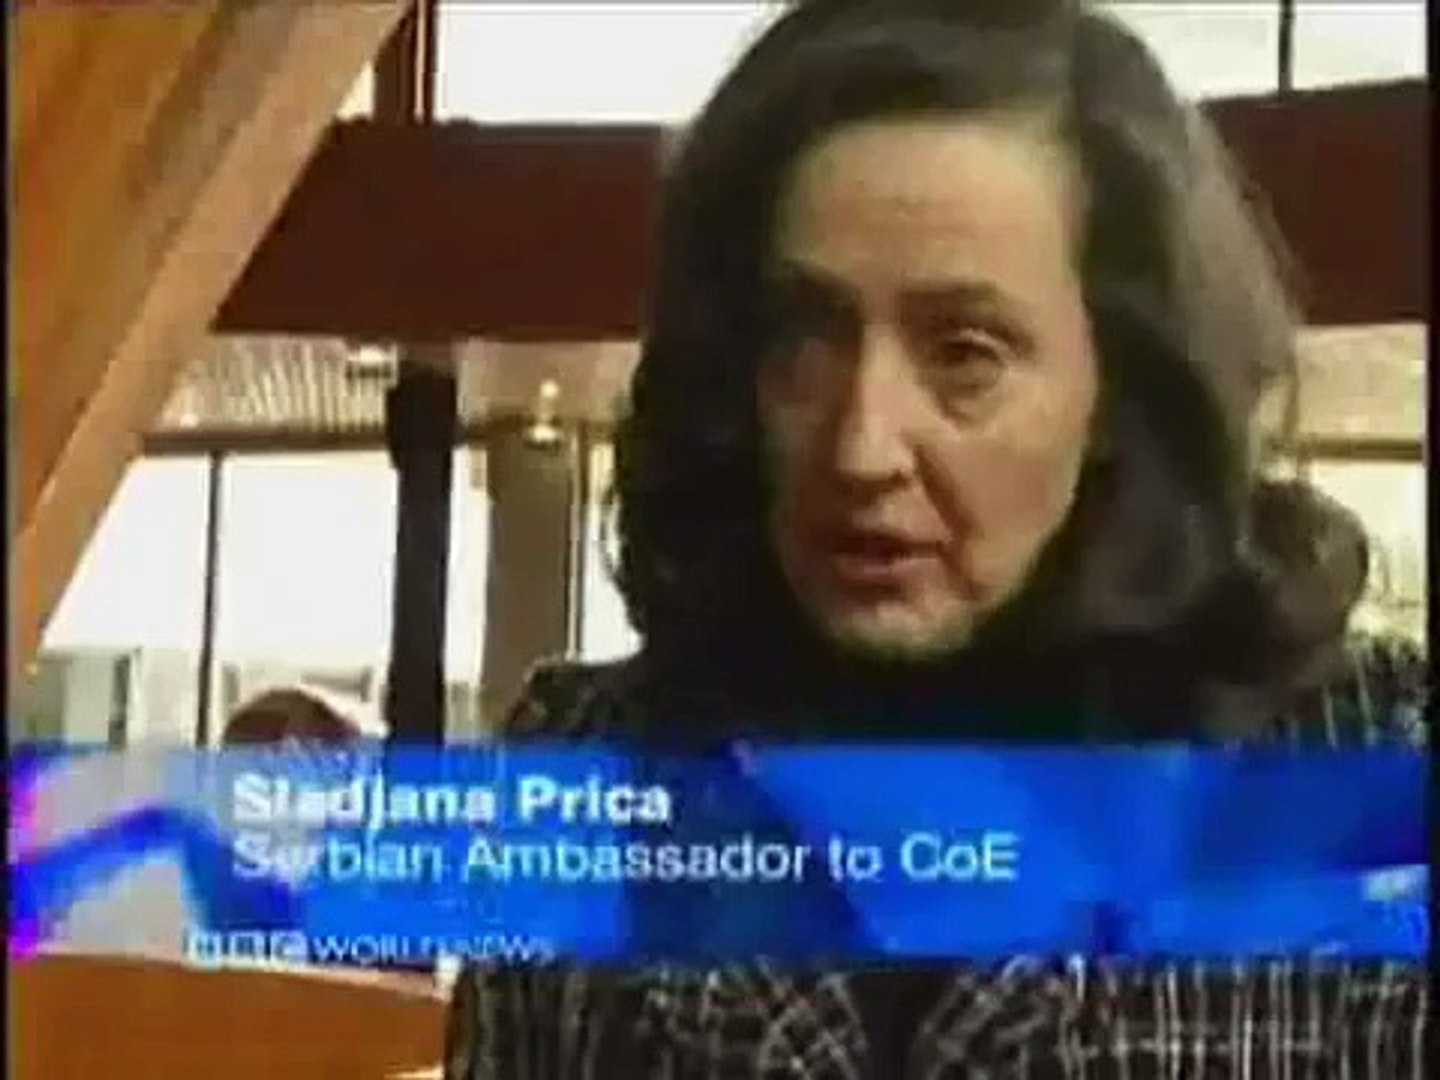 2. BBC documentary on the Council of Europe